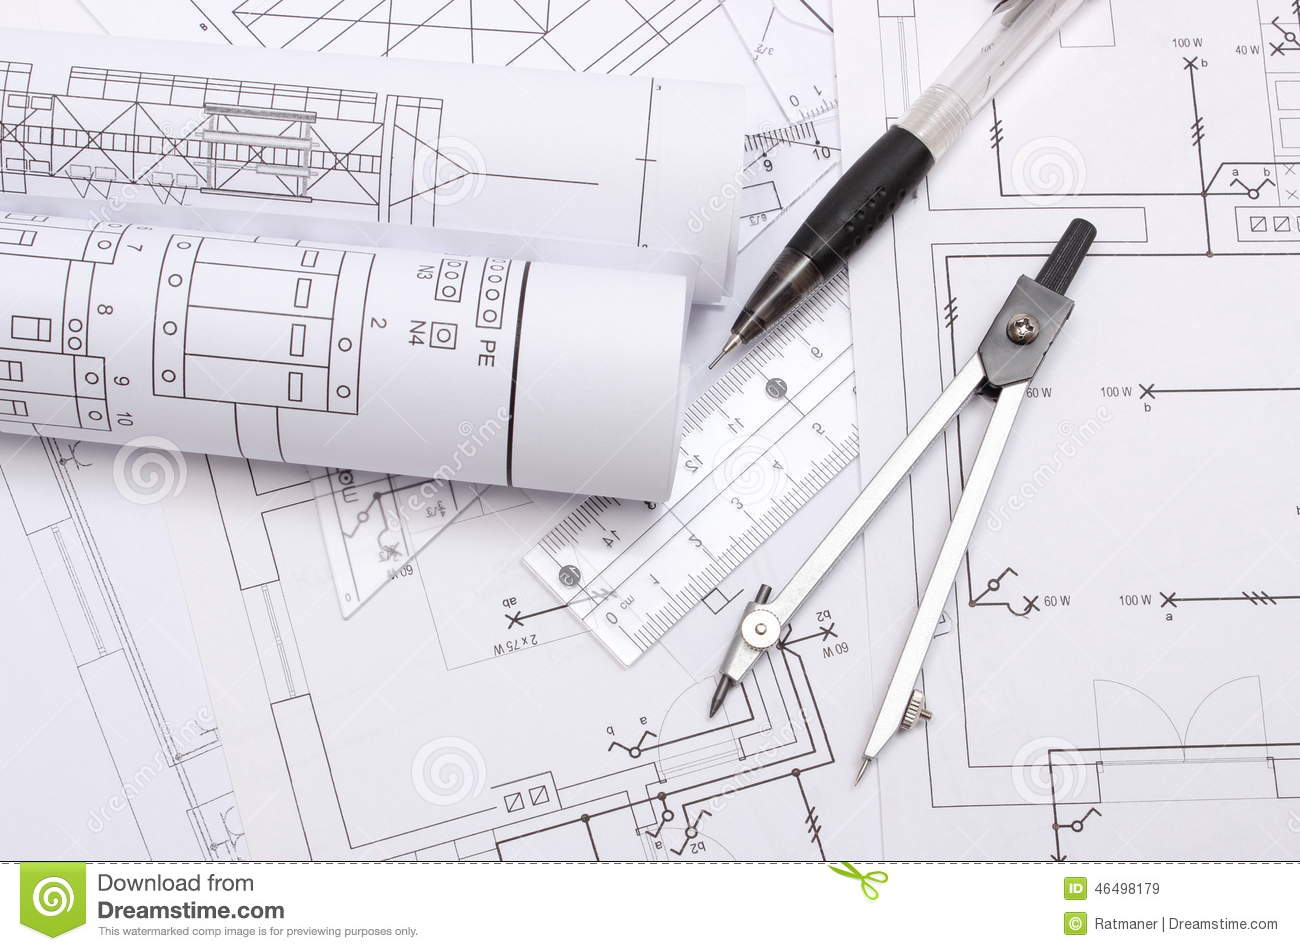 Rolled Electrical Diagrams And Accessories For Drawing Stock Image Download Of Project Paper